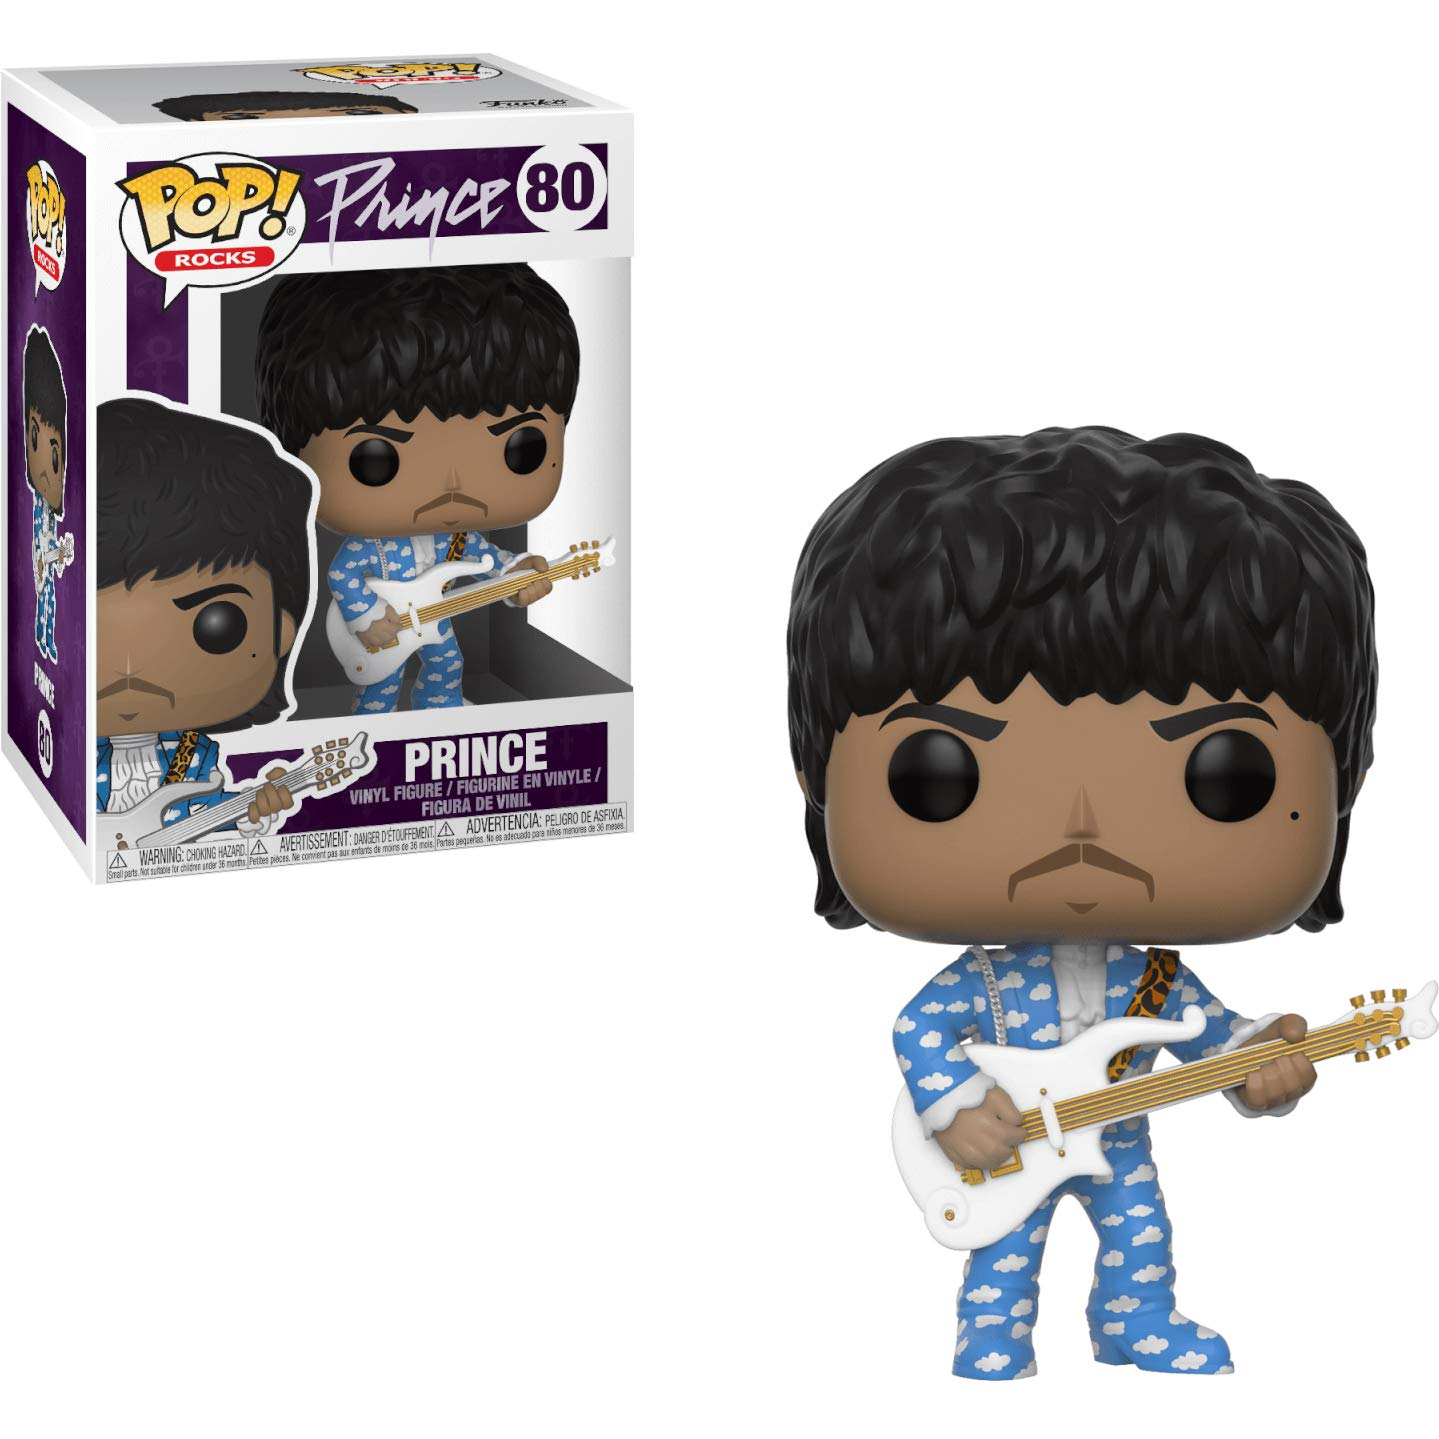 Around The World in a Day BCC94177P #080 // 32248 1 Music Themed Trading Card Bundle Rocks Vinyl Figure Funko Prince : Prince x POP